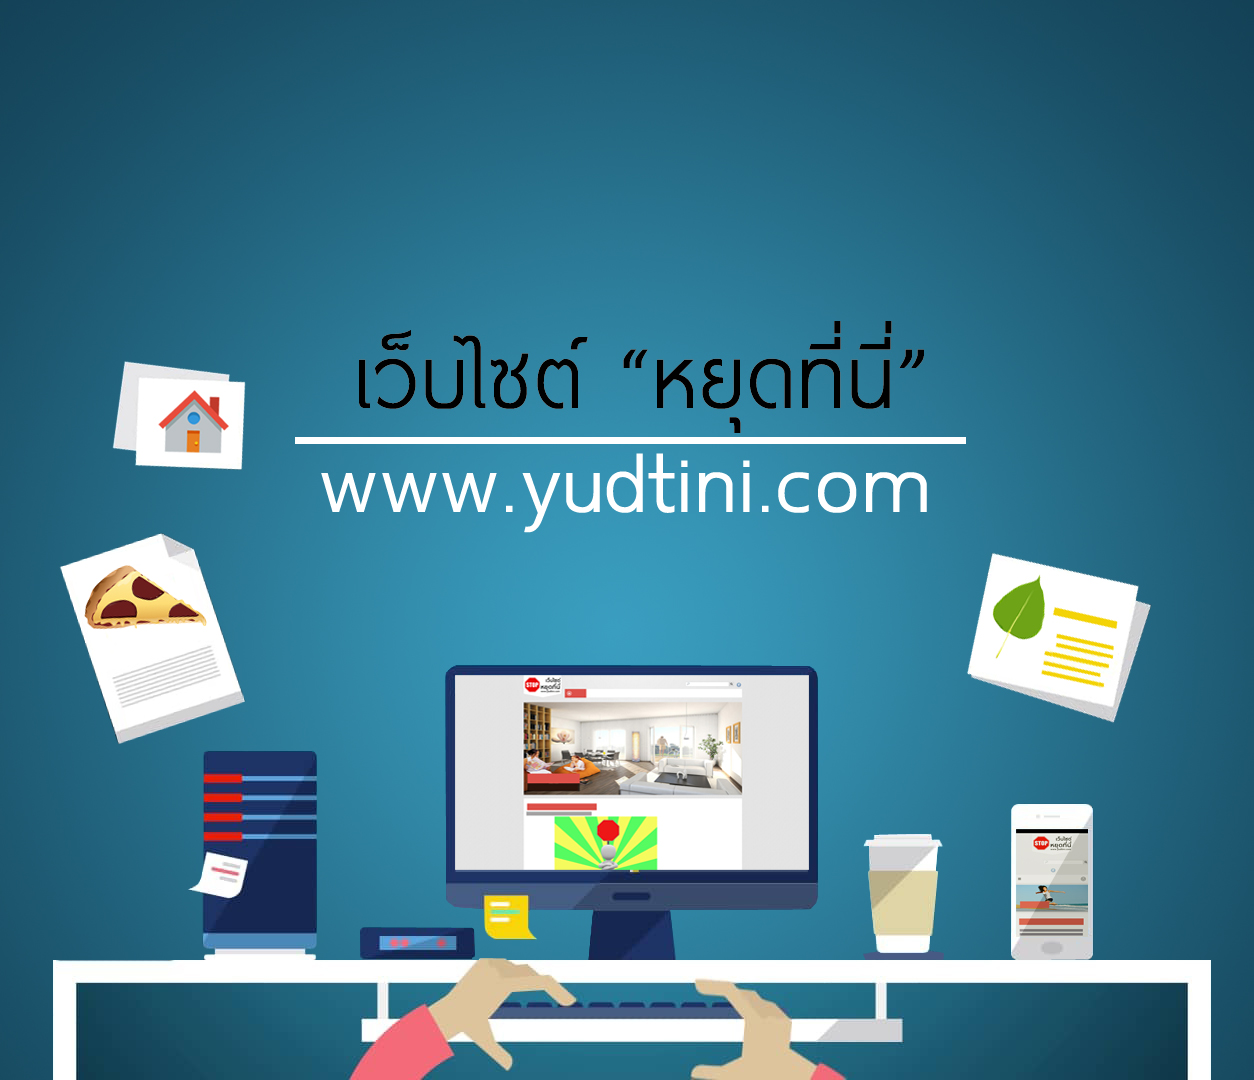 Website Yudtini - Good articles about home design, dhamma, health